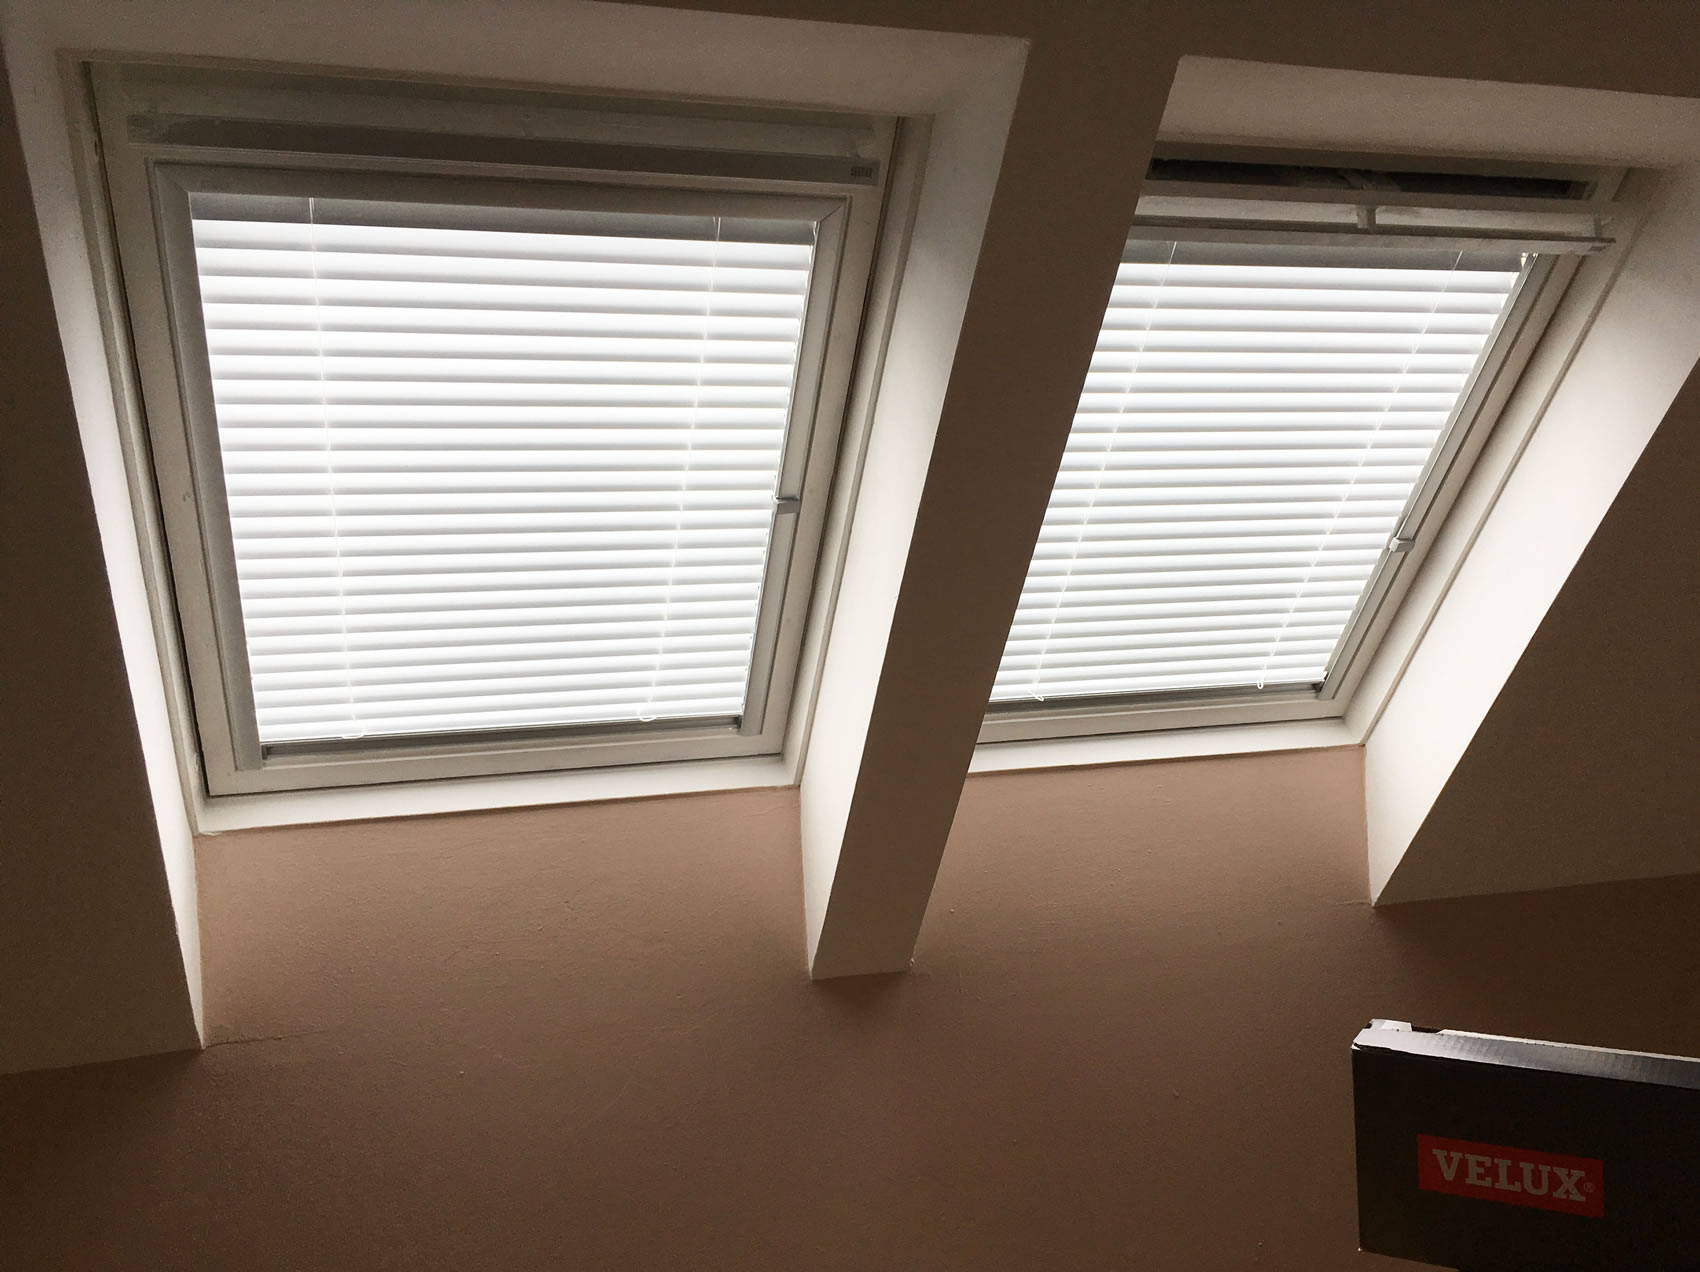 Velux Metal Venetian Blind 3 Murphys Blinds